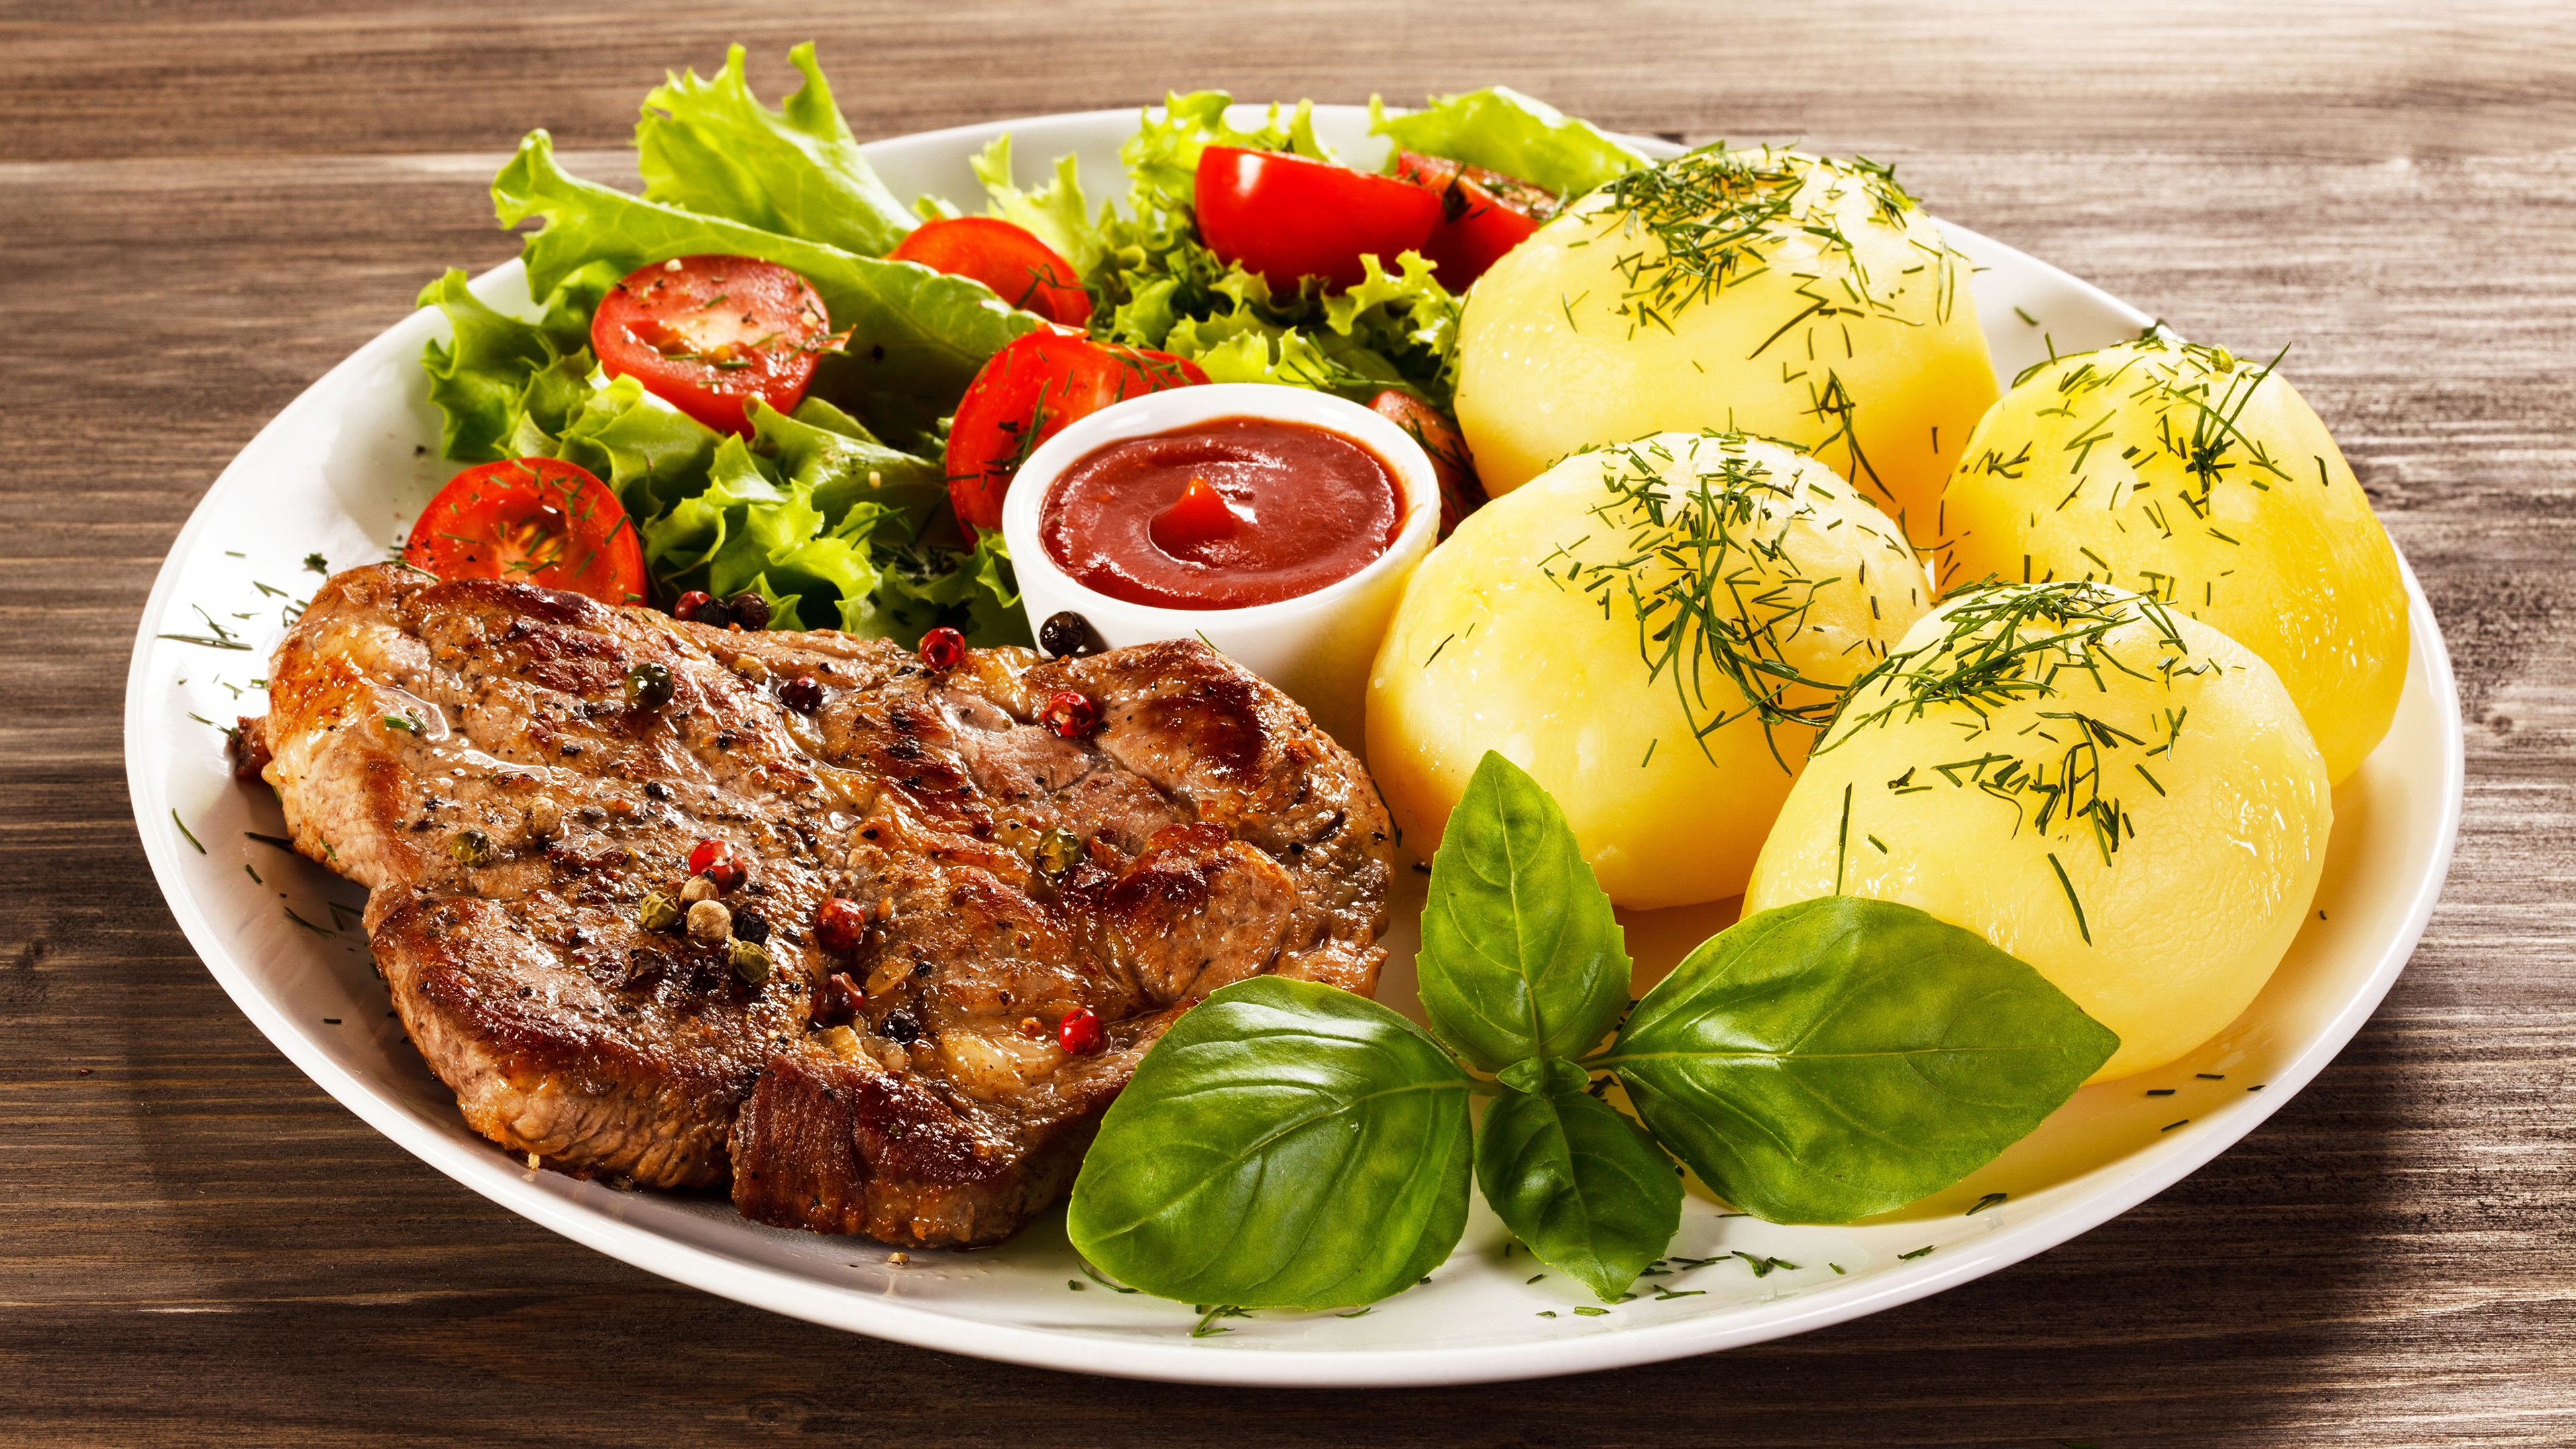 meat, steak, potatoes, salad, tomatoes, tomato sauce.jpg